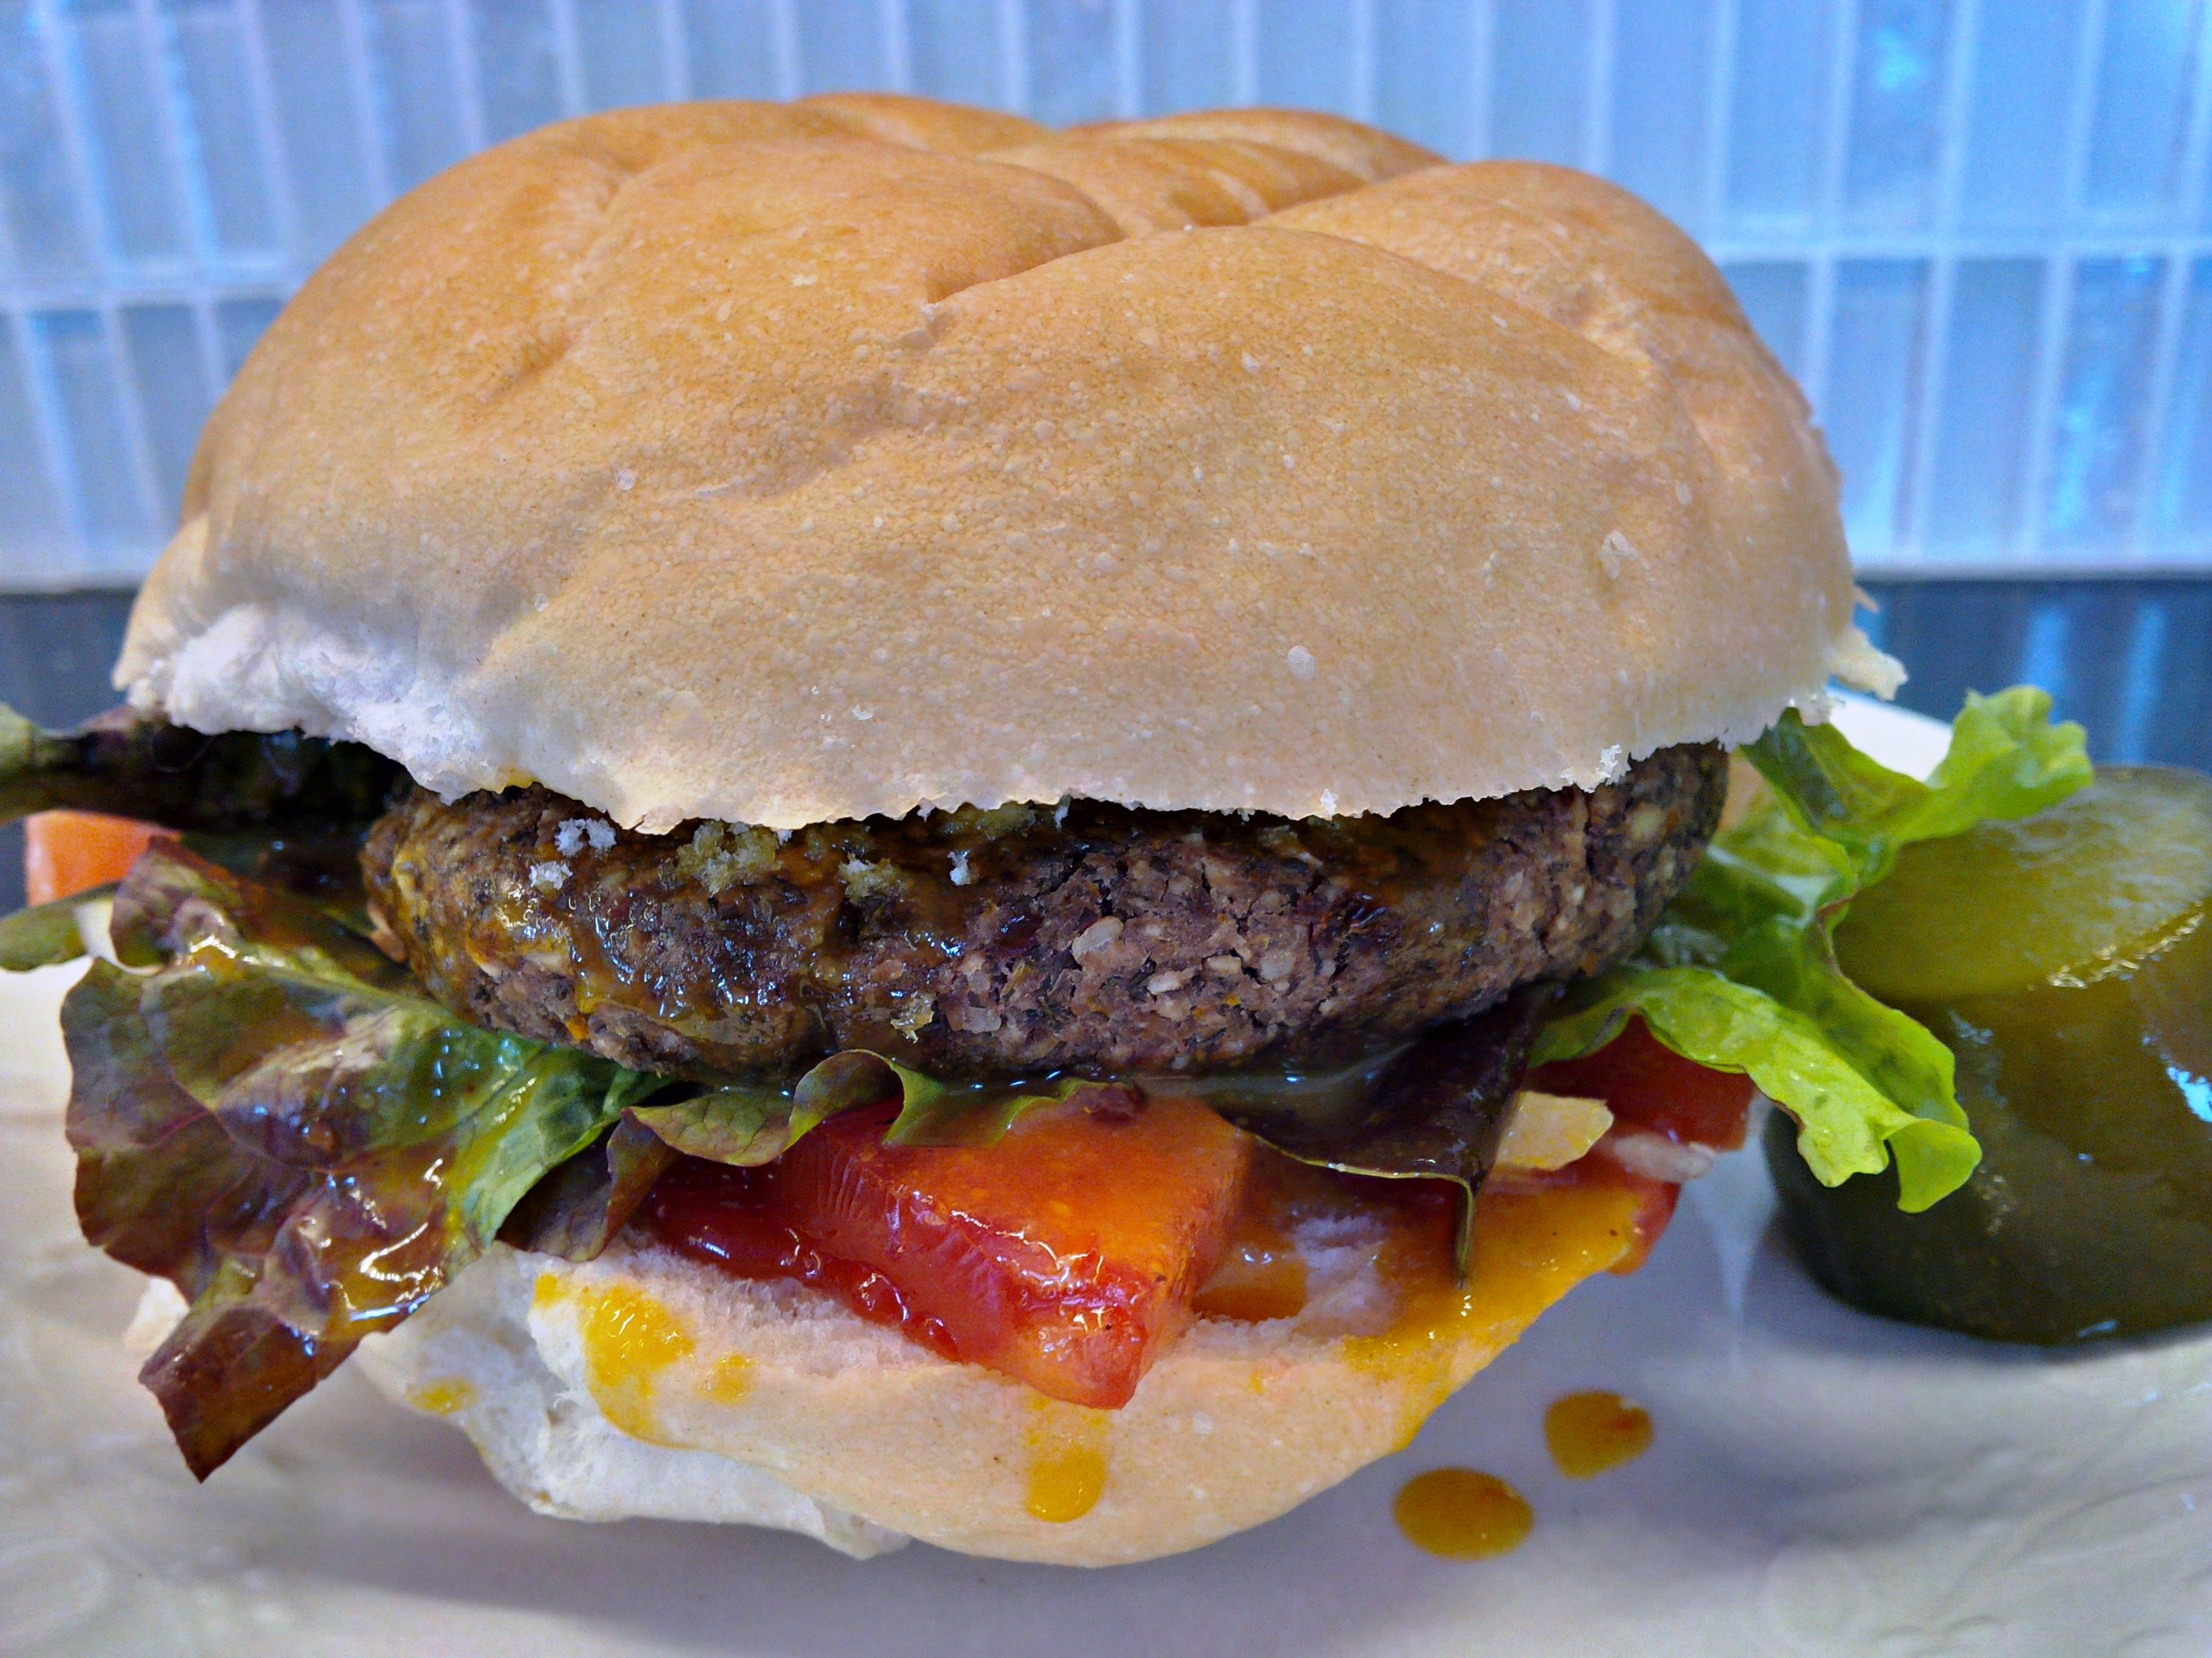 Iron-lady lentil burgers with mustard sauce | The Pink Elephant Room